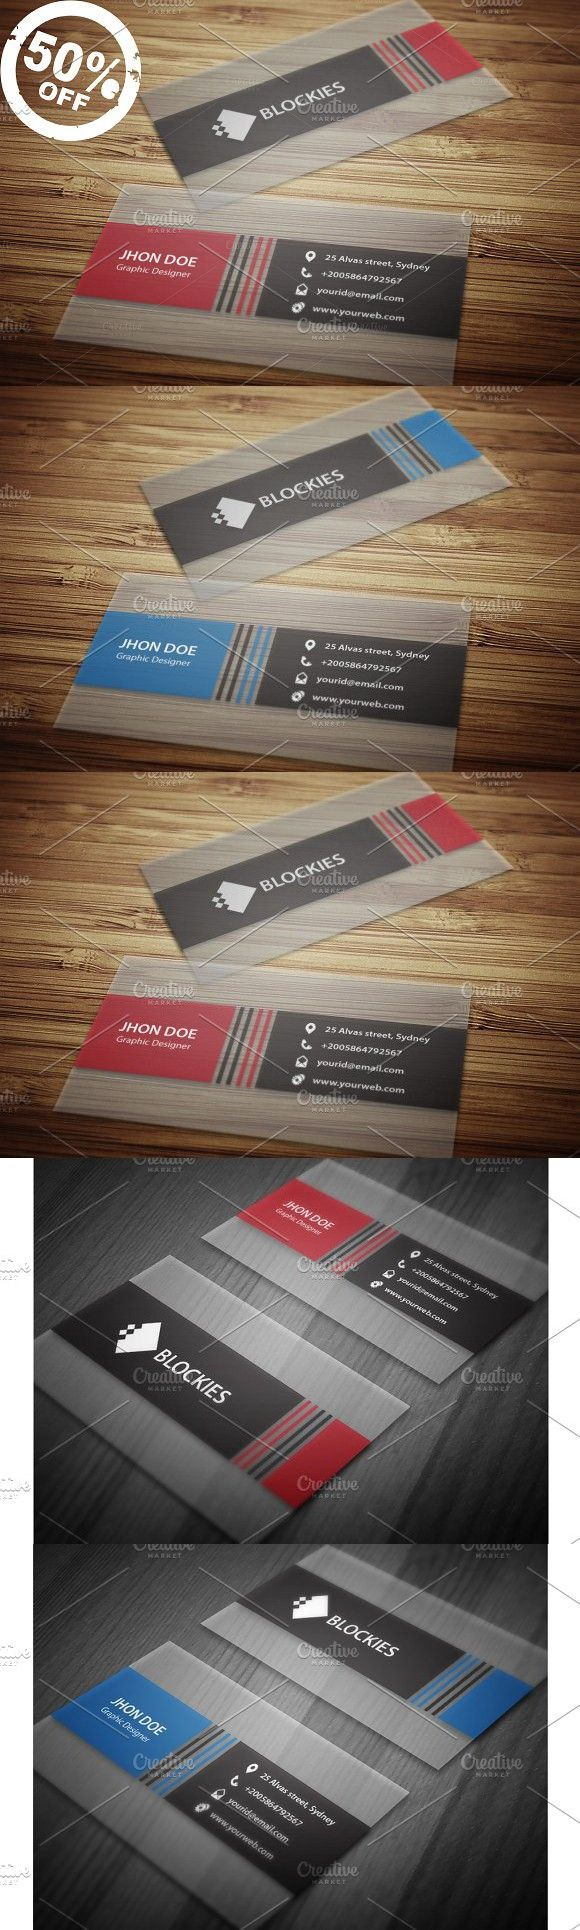 18 transparent business card free psd ai eps format download semitransparent business card creative business card templates transparent business card template reheart Gallery